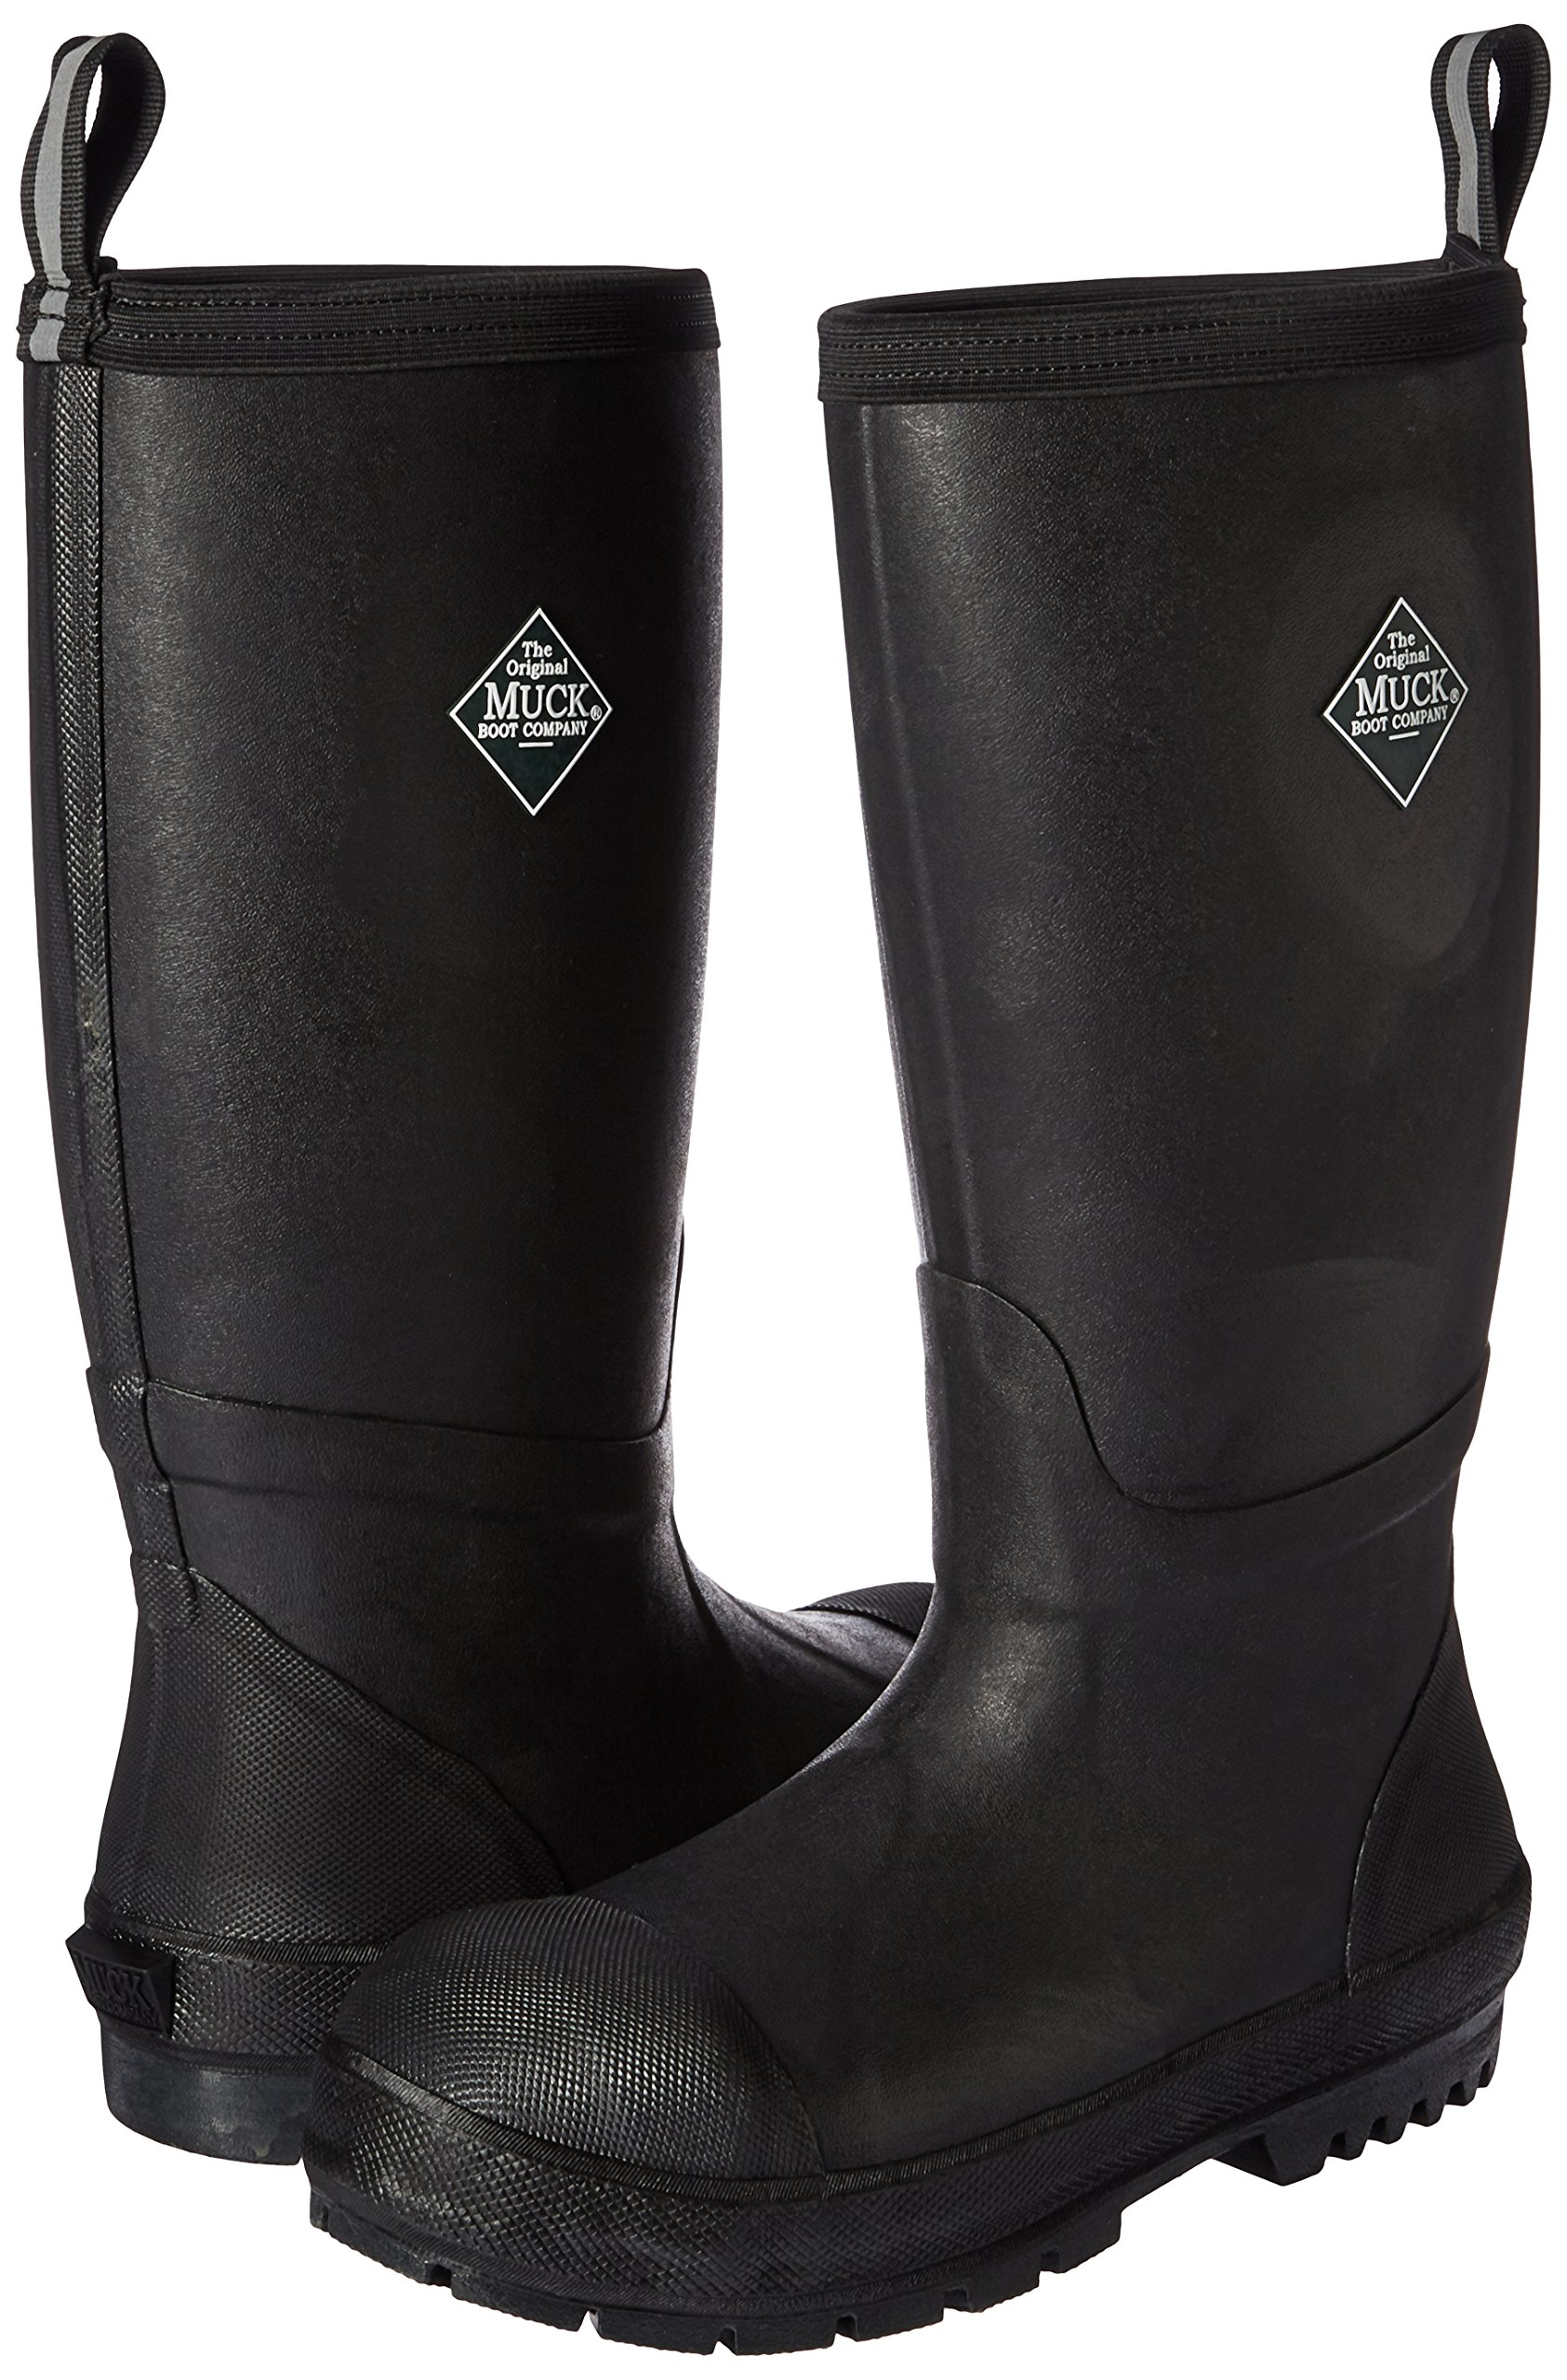 Muck Boot Men's Chore Resistant Tall Steel Toe Work Boot, Black, 10 US/10-10.5 M US by Muck Boot (Image #6)